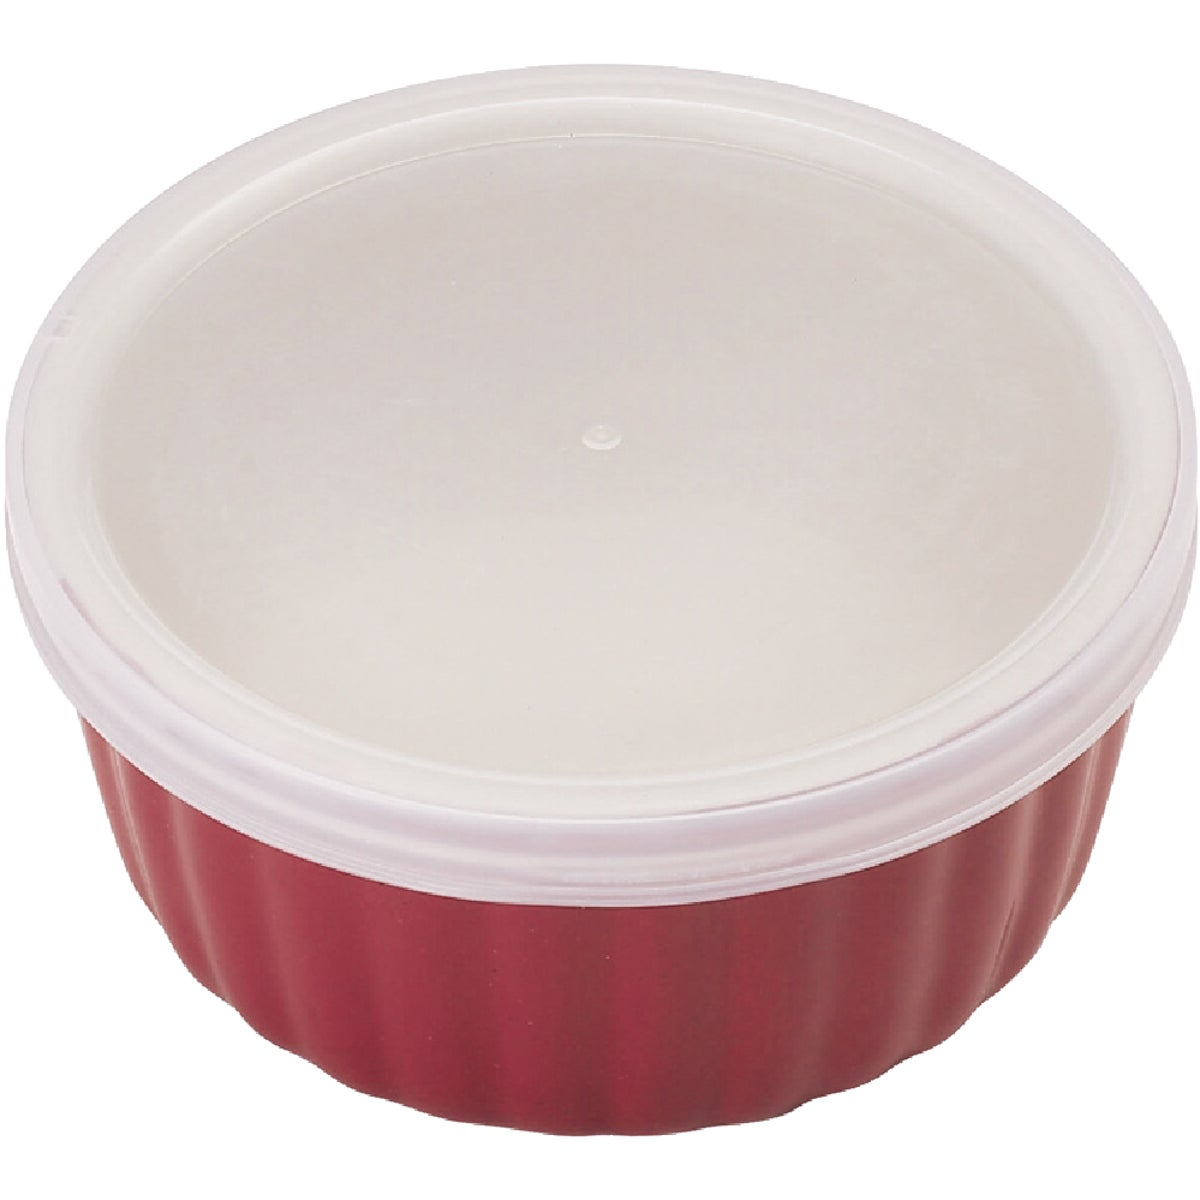 14 OZ RED RAMEKIN